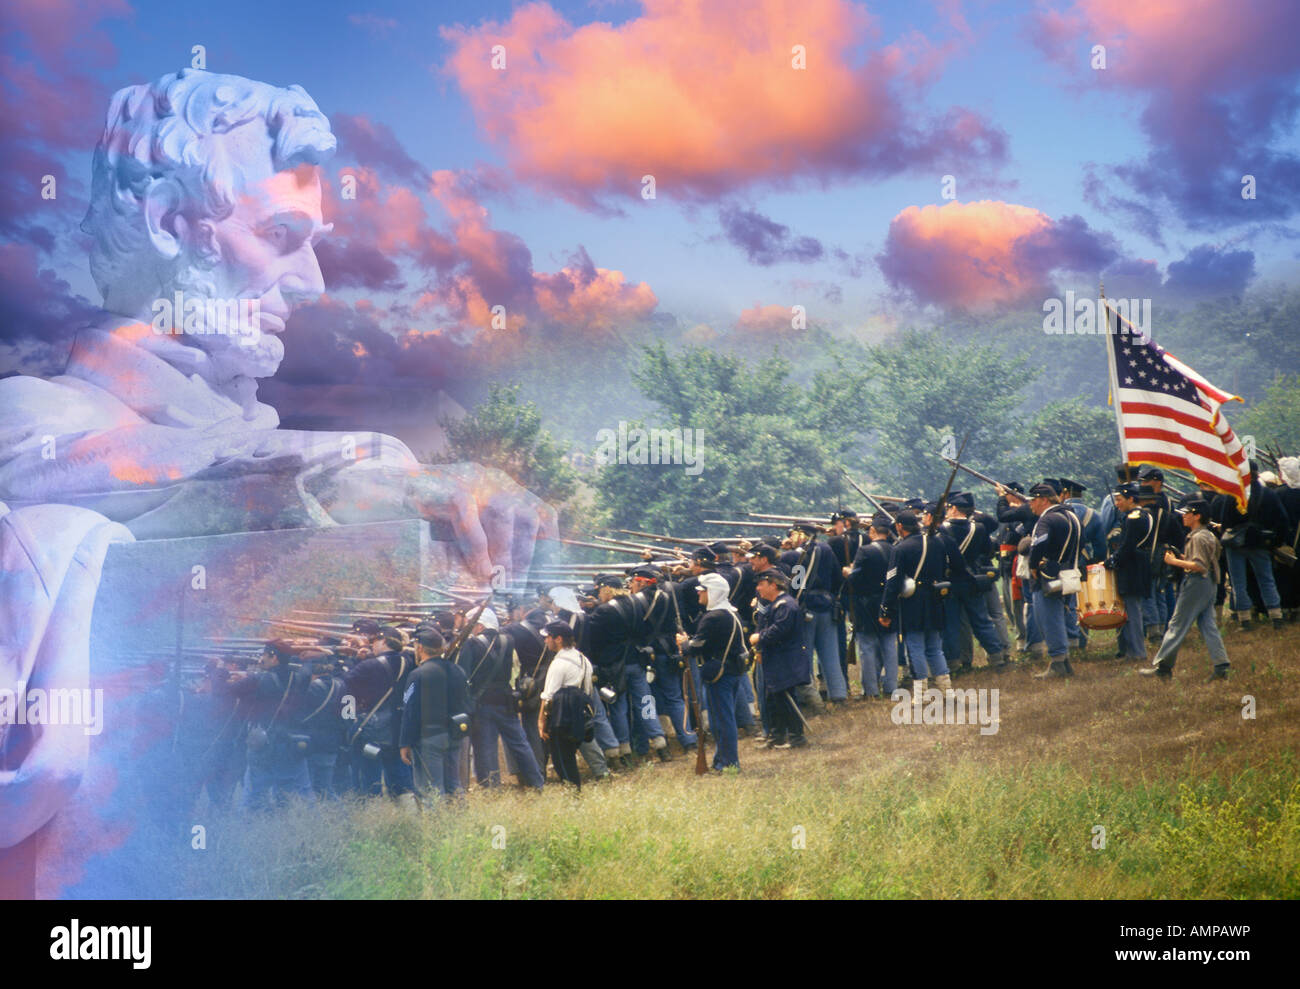 Composite image of Lincoln Memorial and Civil War soldiers in battle - Stock Image